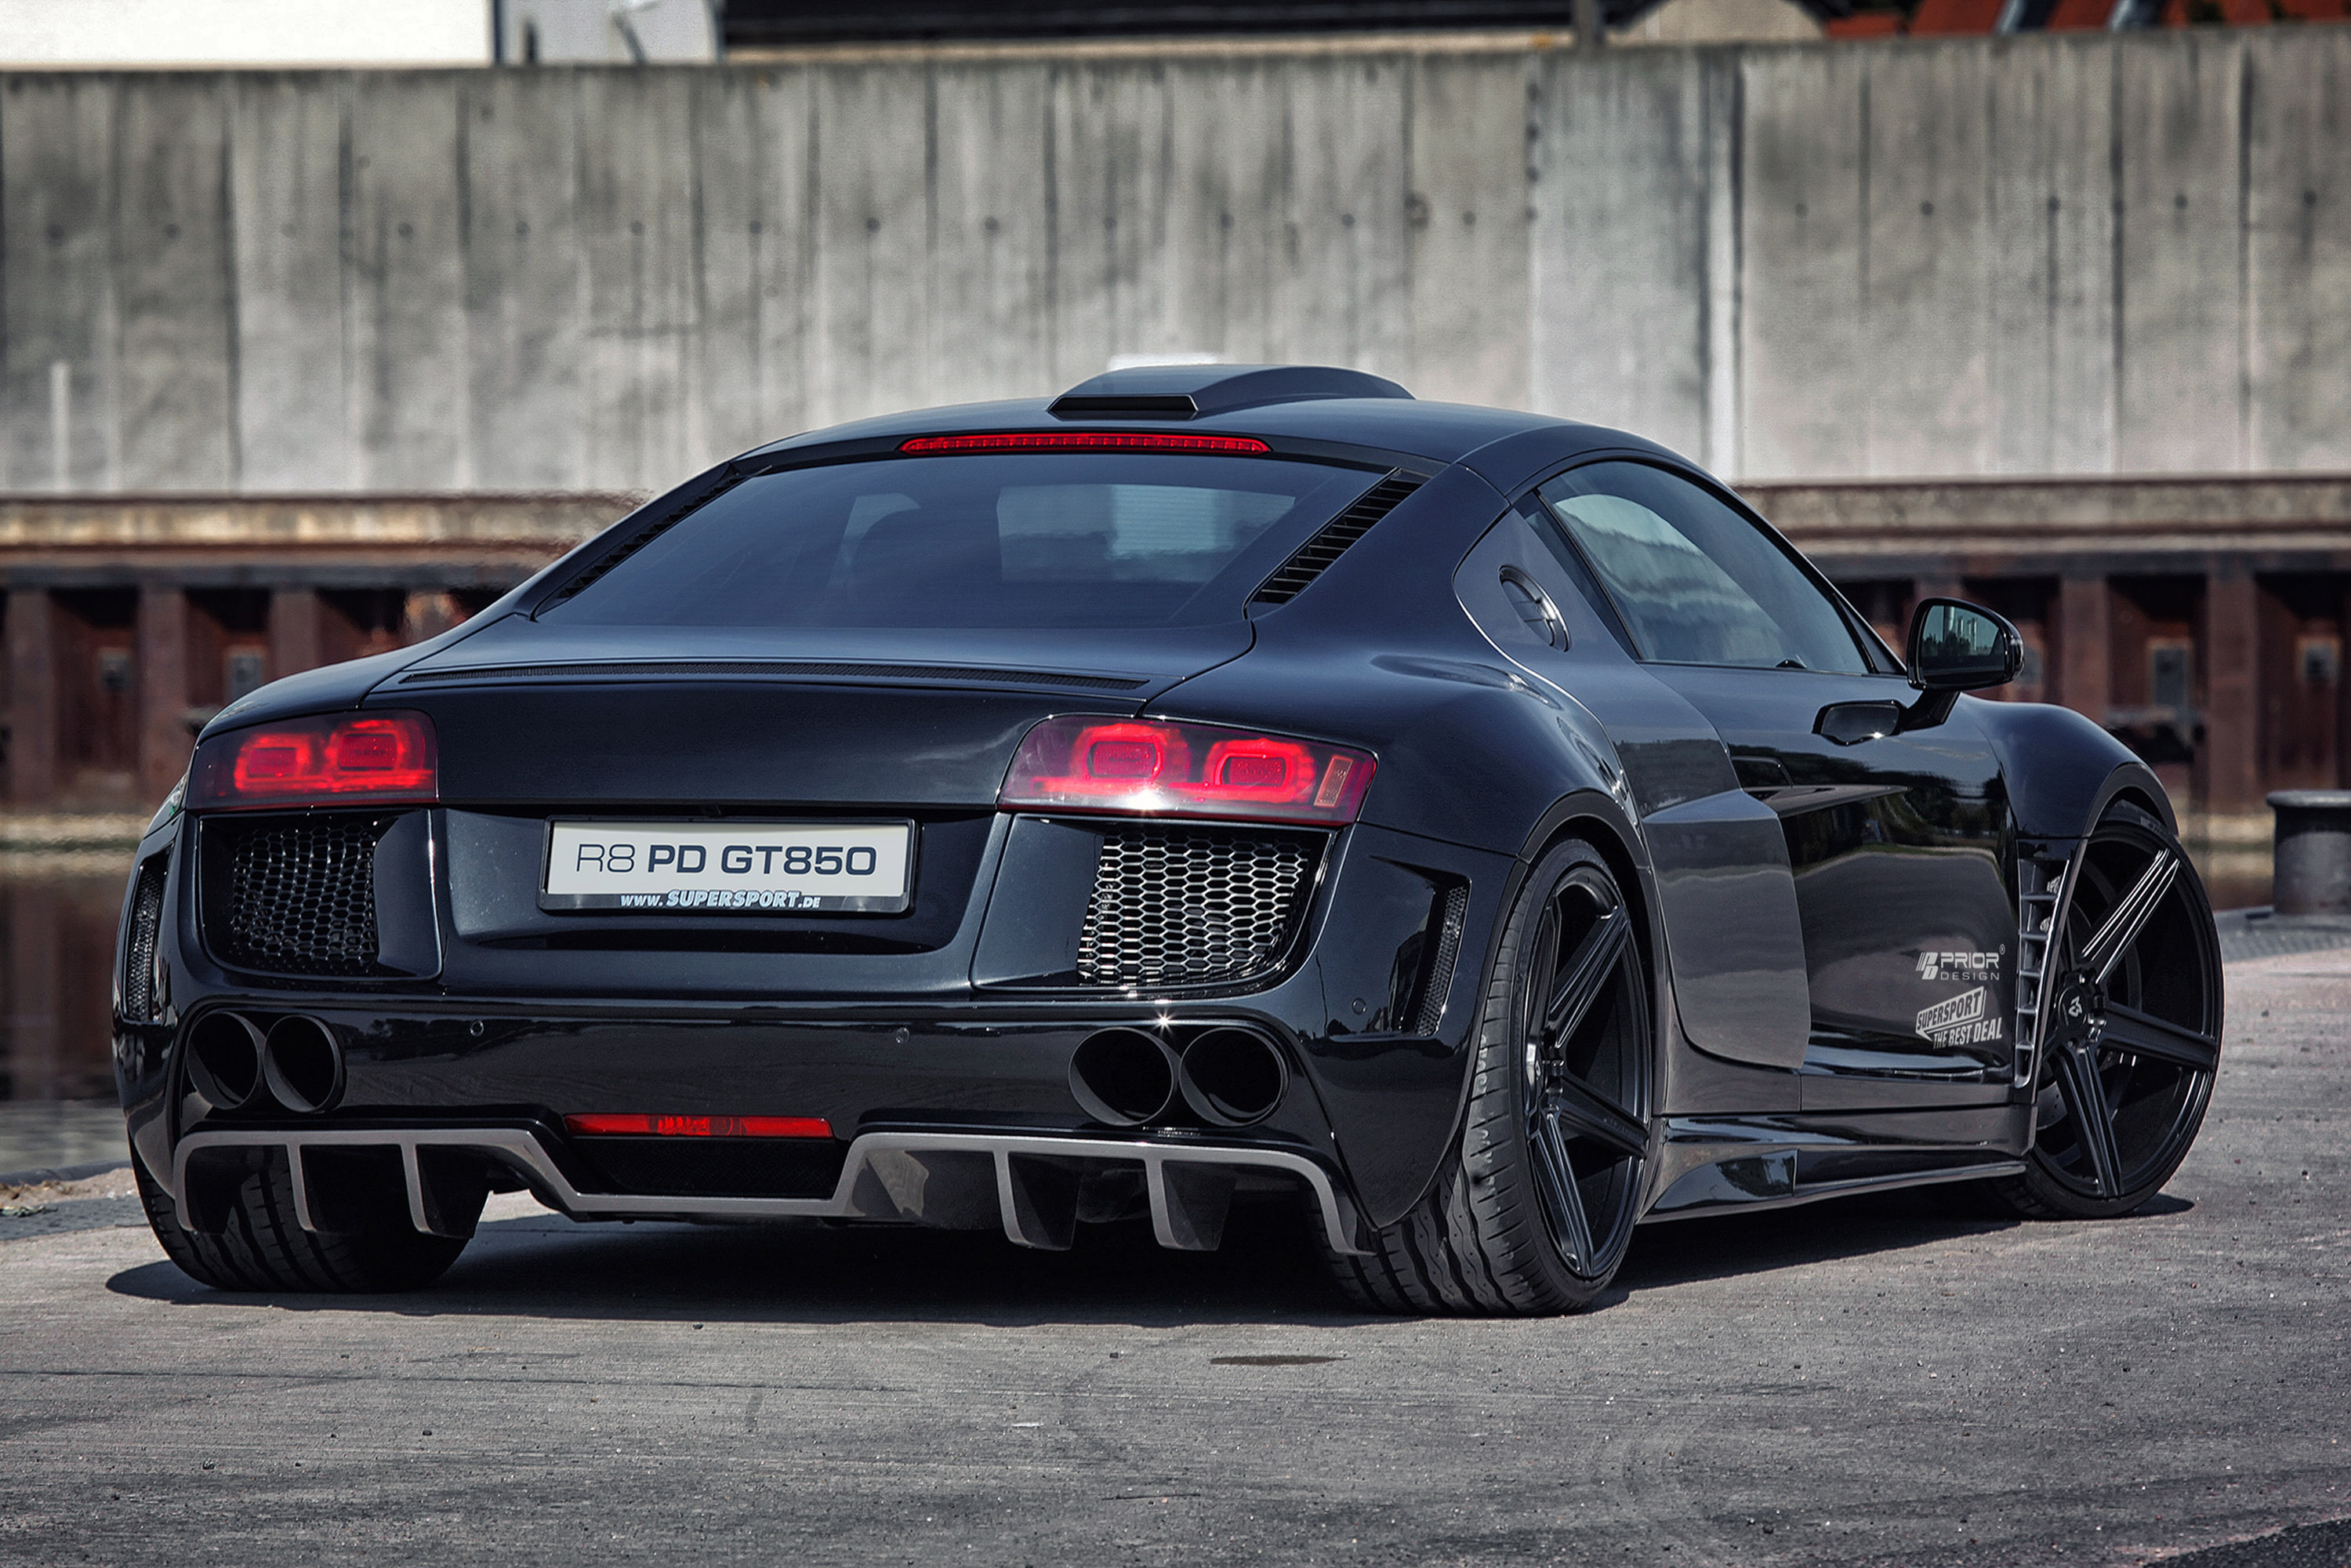 2013 Prior Design Audi R8 Pd Gt850 08 1 Rs246 Com